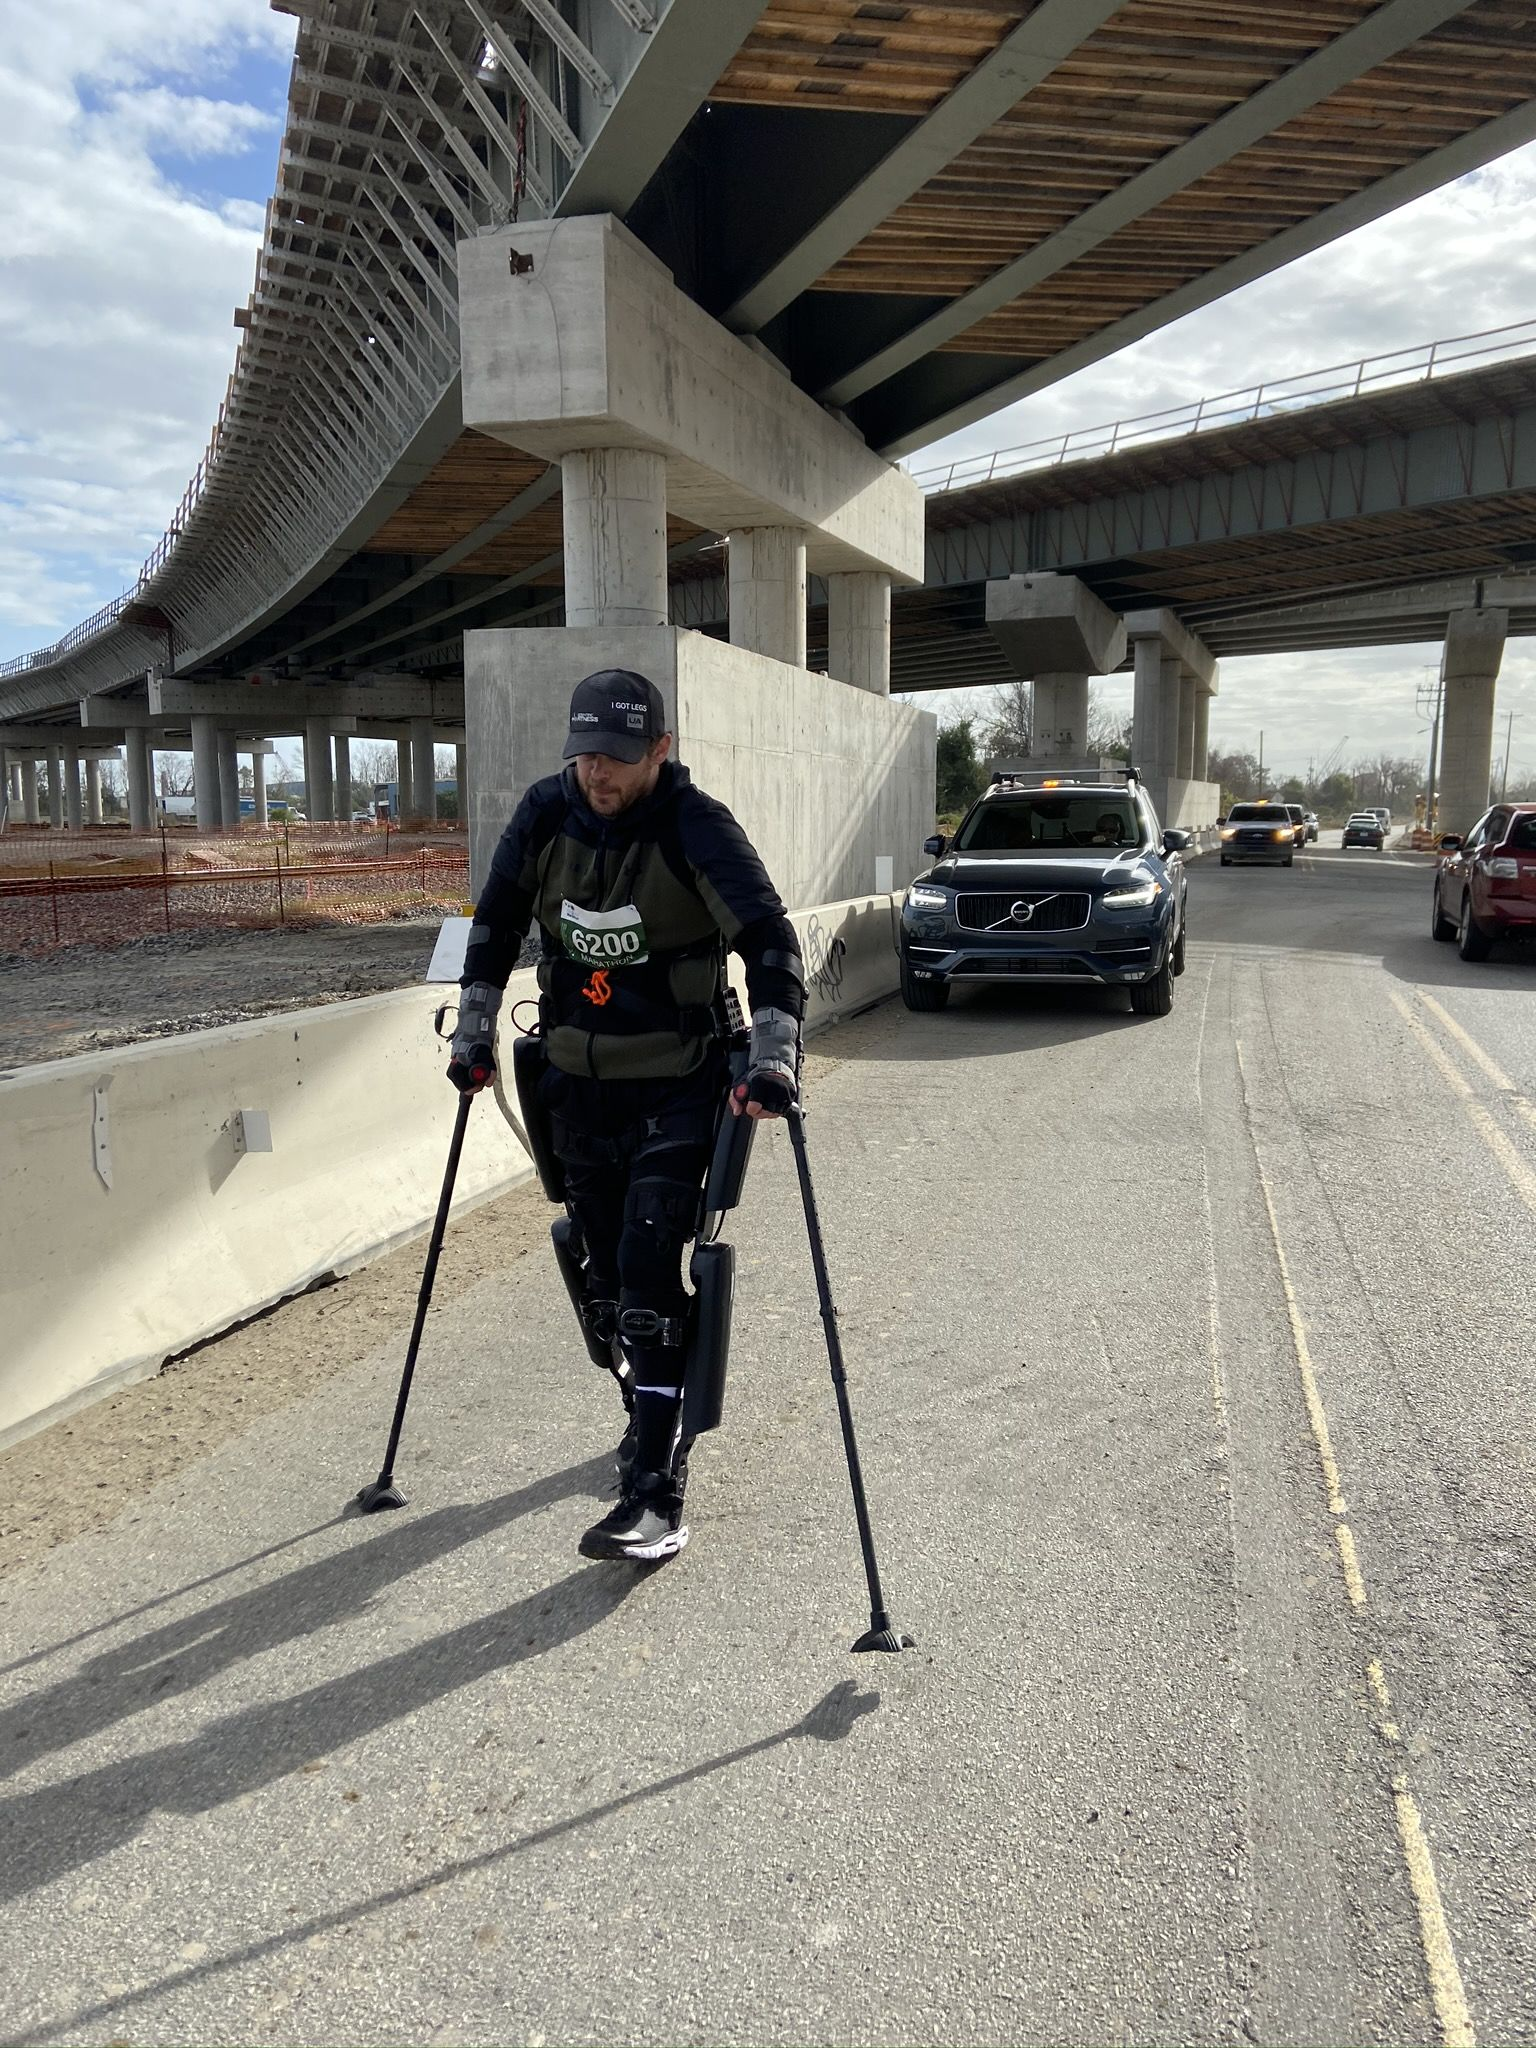 Marathon Record Shattered at Charleston Marathon by Man in Exoskeleton